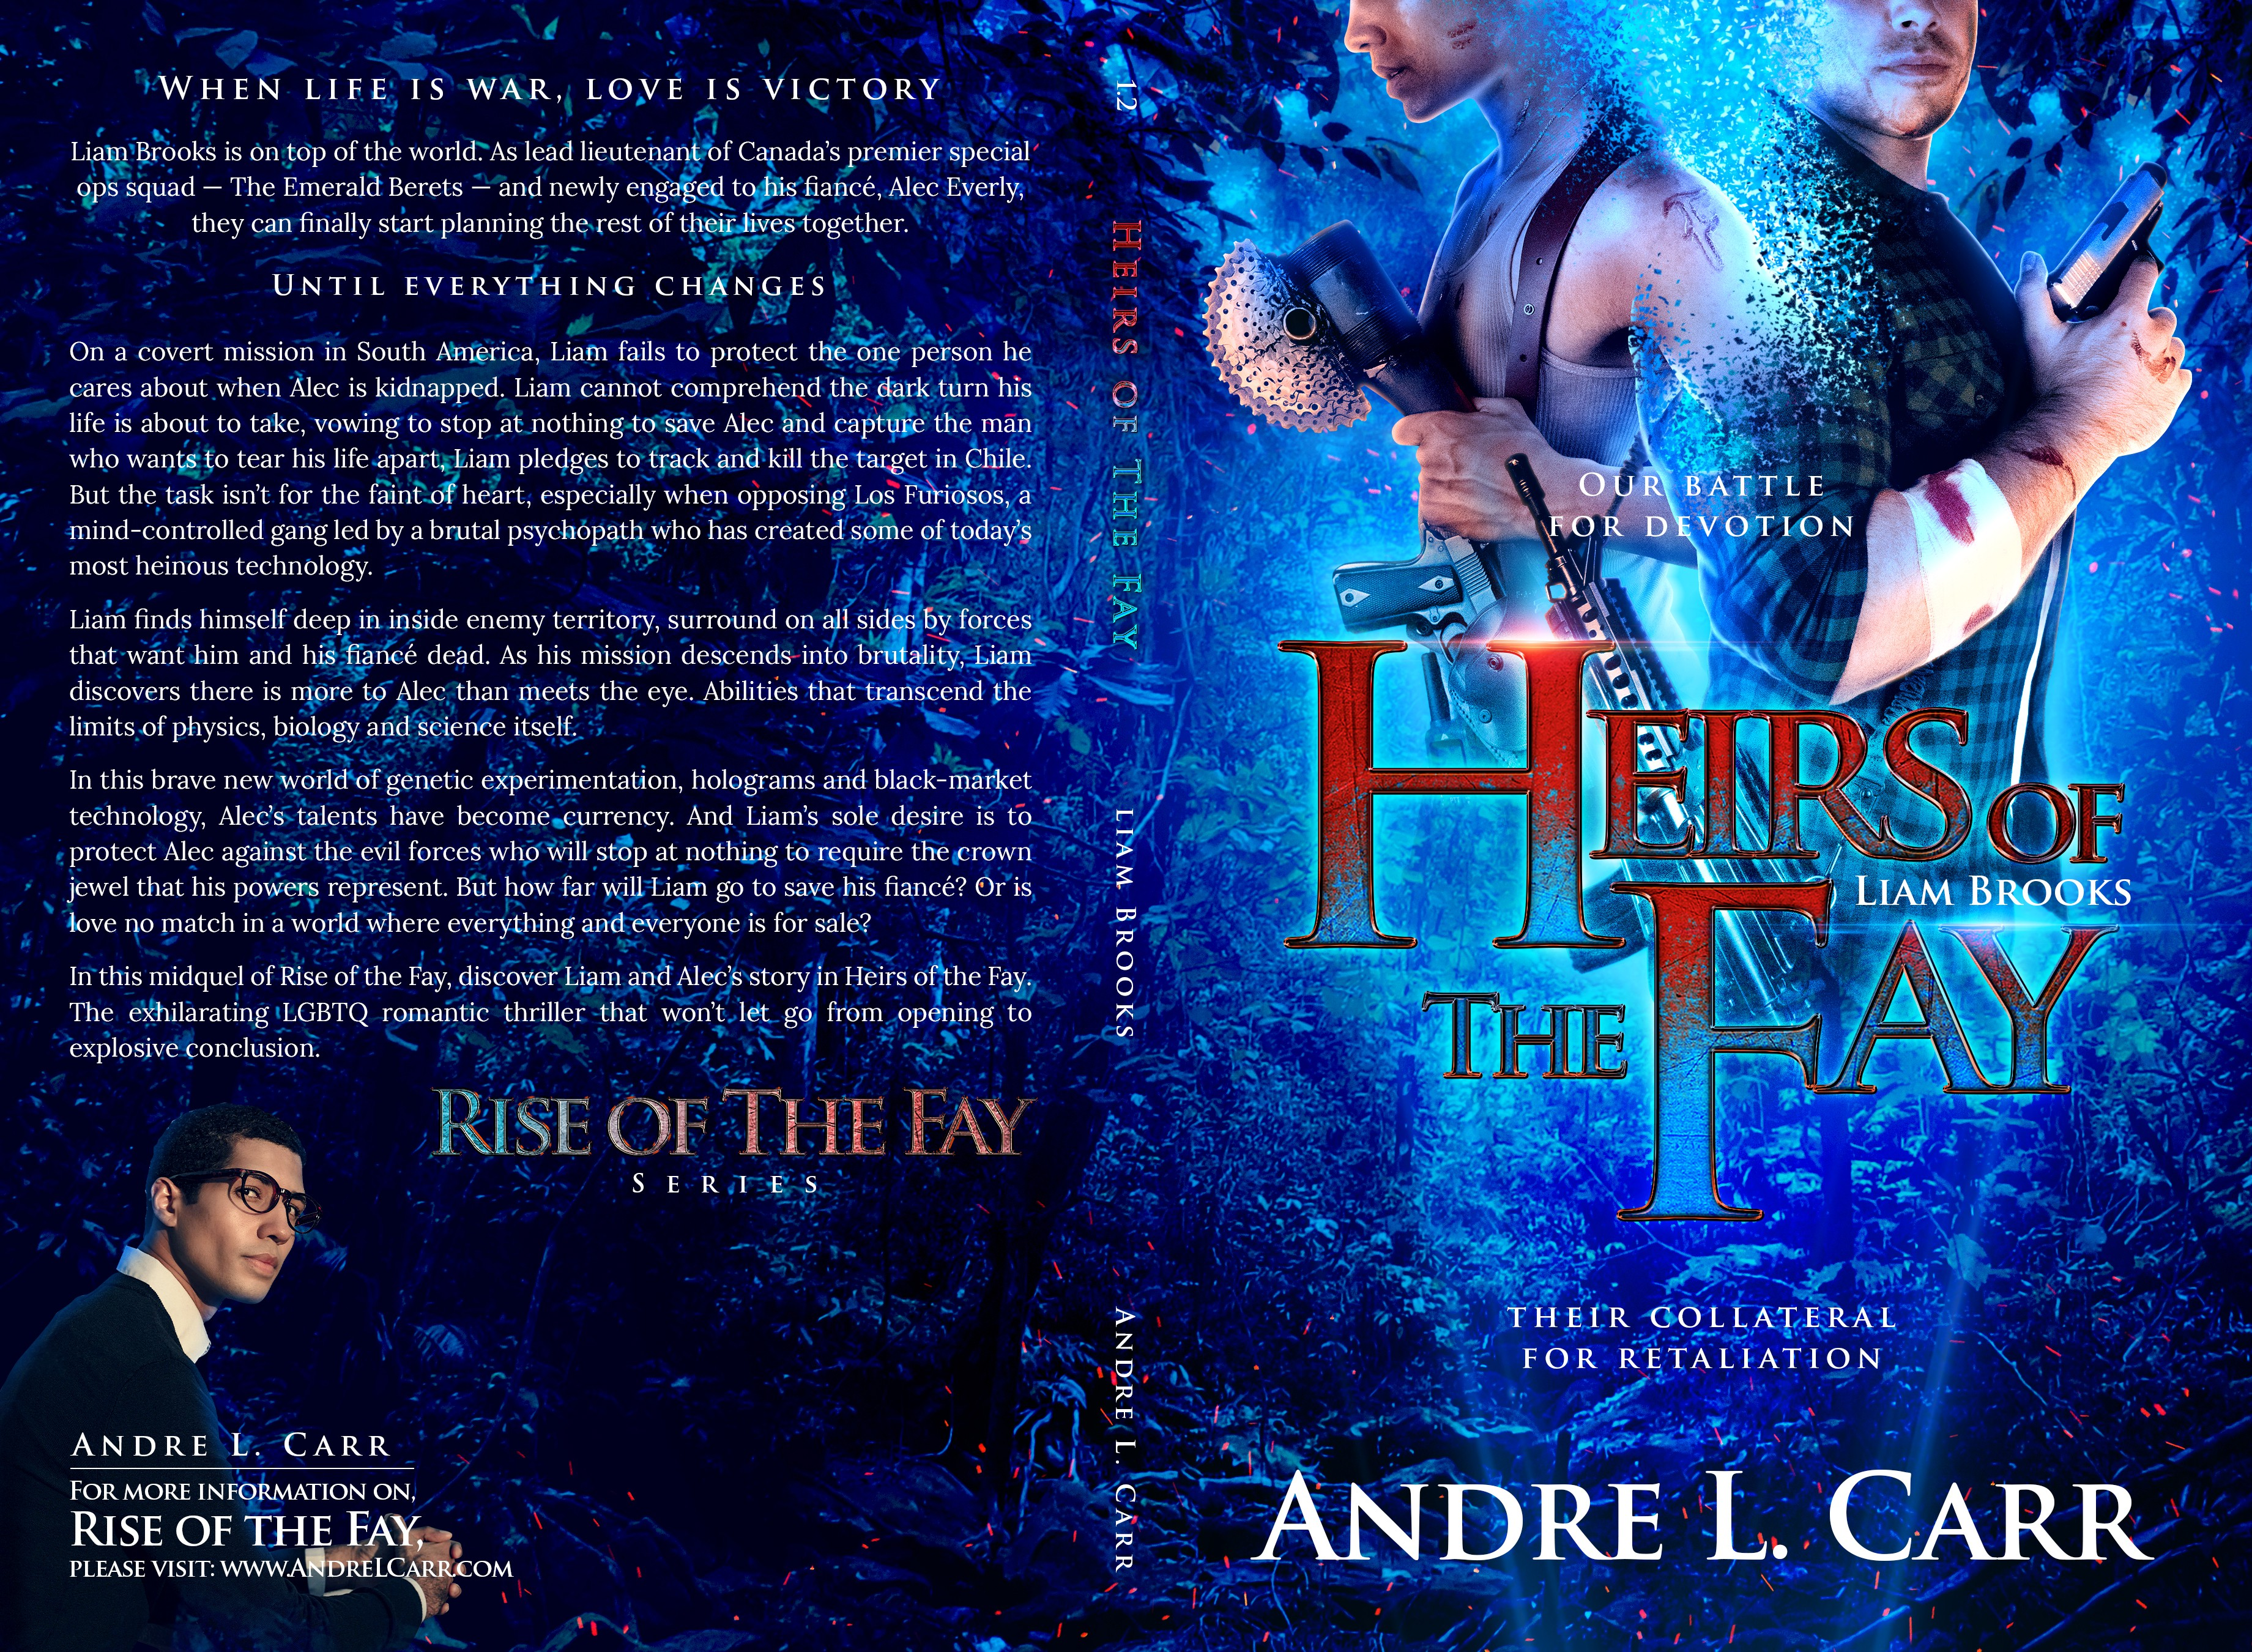 Heirs of the Fay: Liam Brooks Book Cover